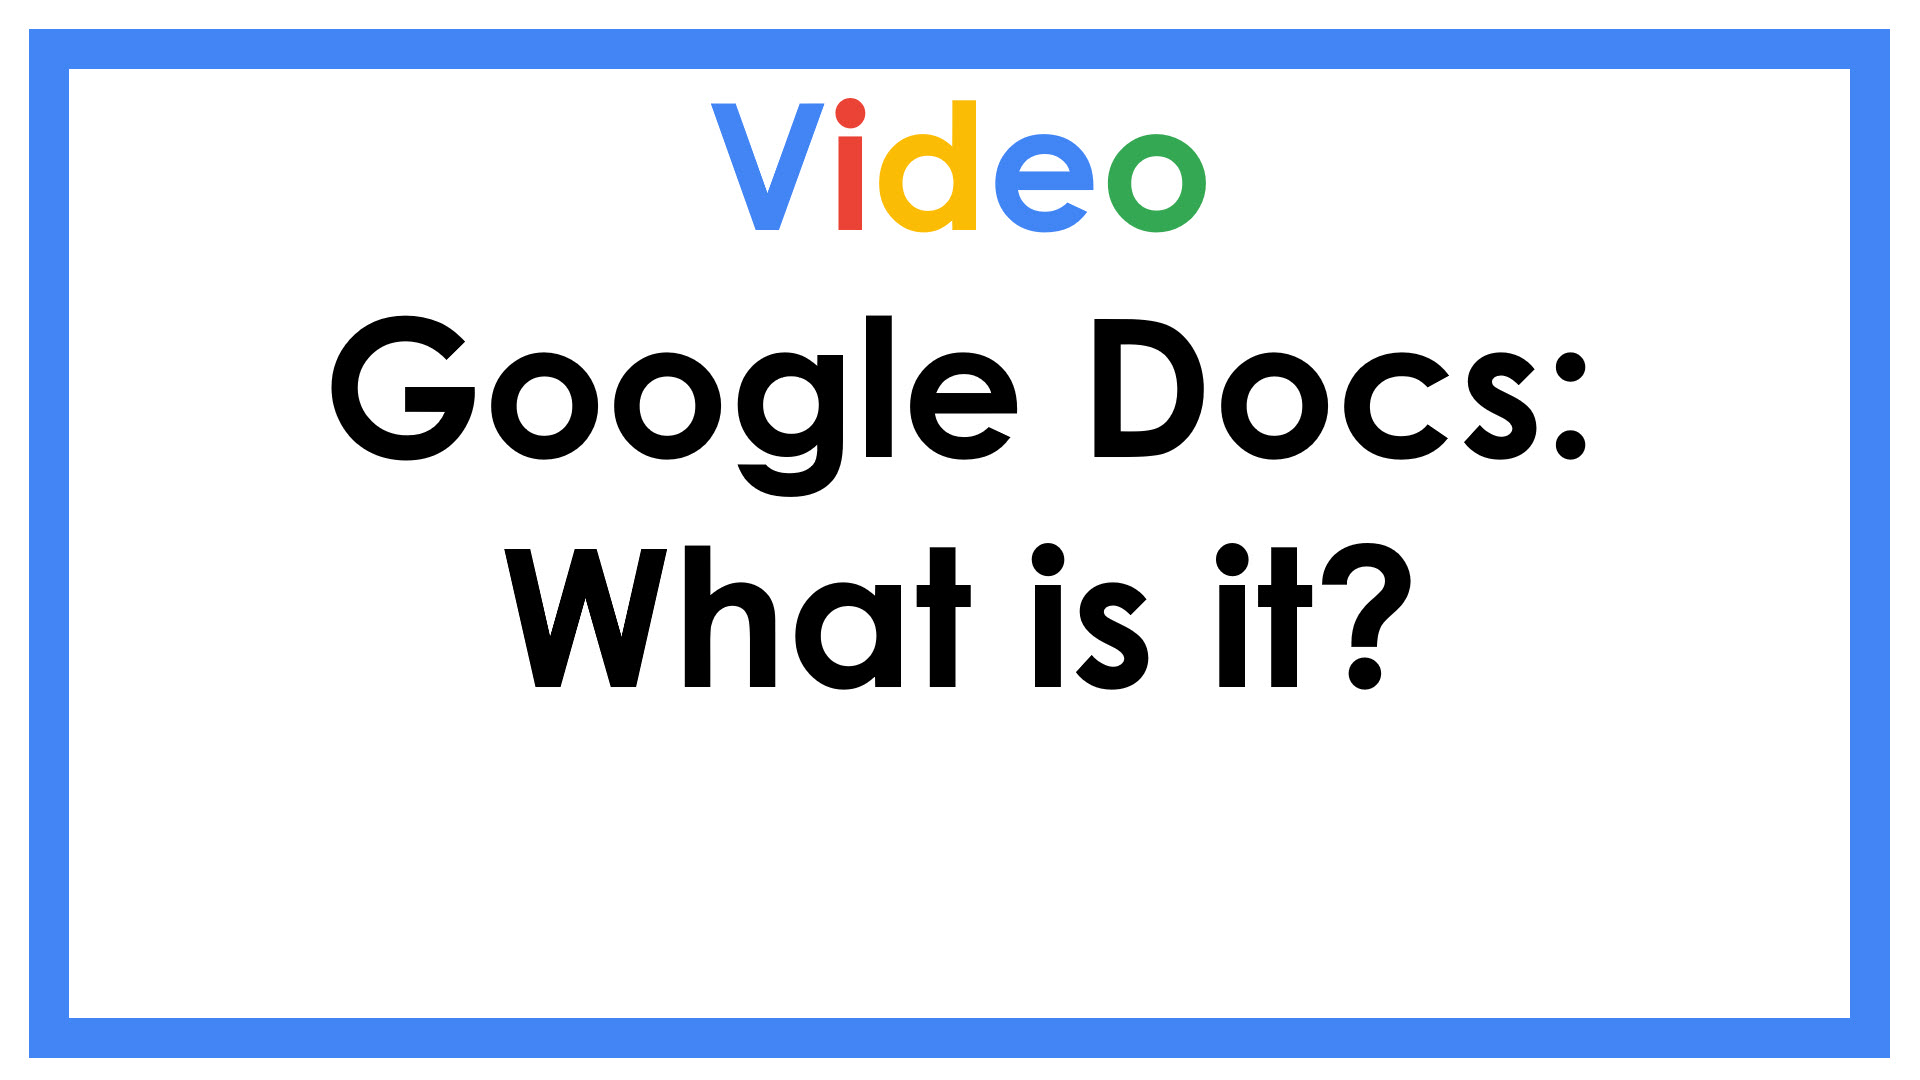 Google Docs: What is it?